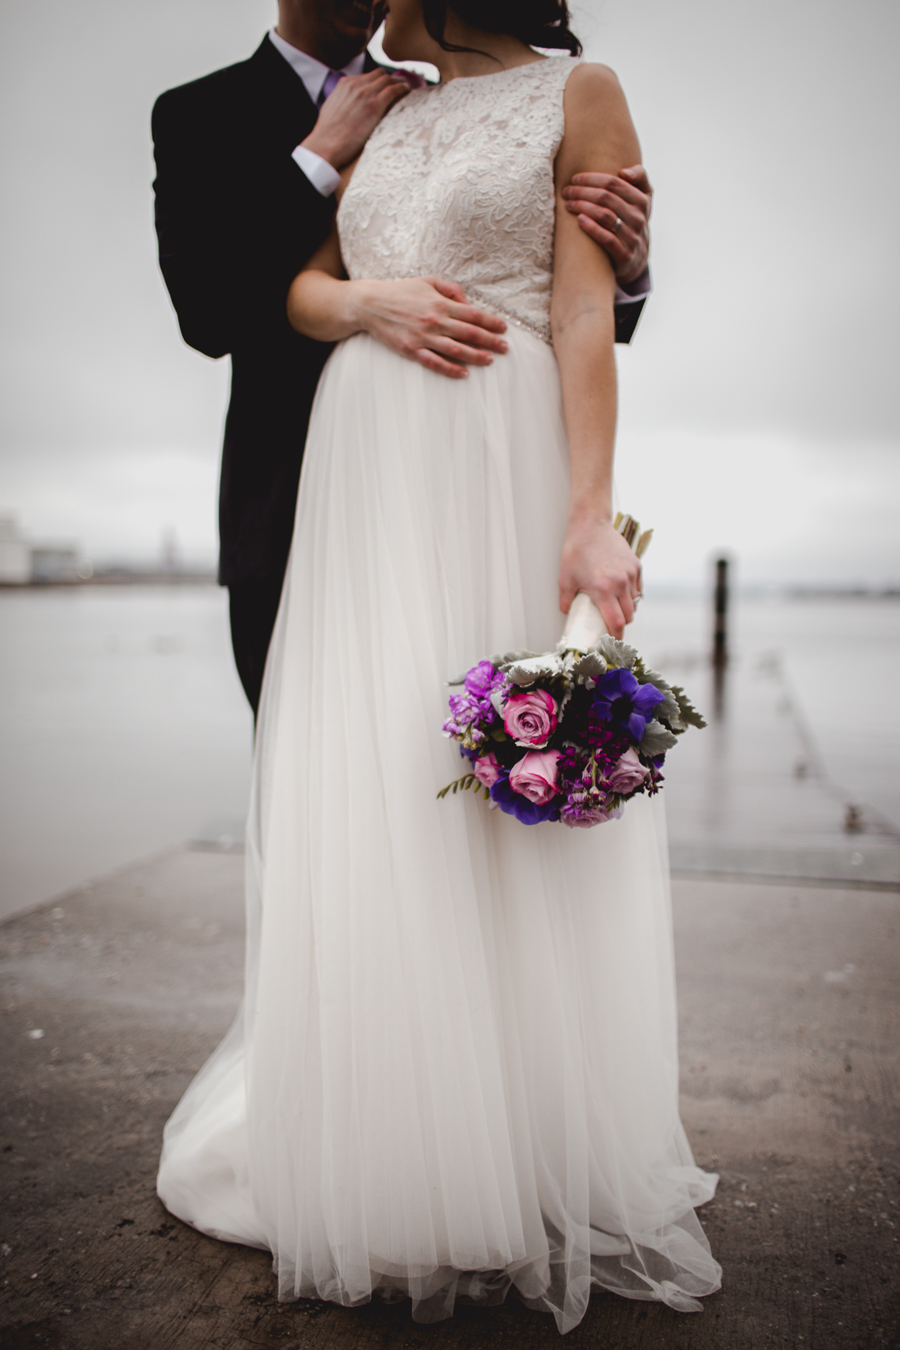 Cambria_Creative_Baltimore_Fells_Wedding_Photography-0915.jpg